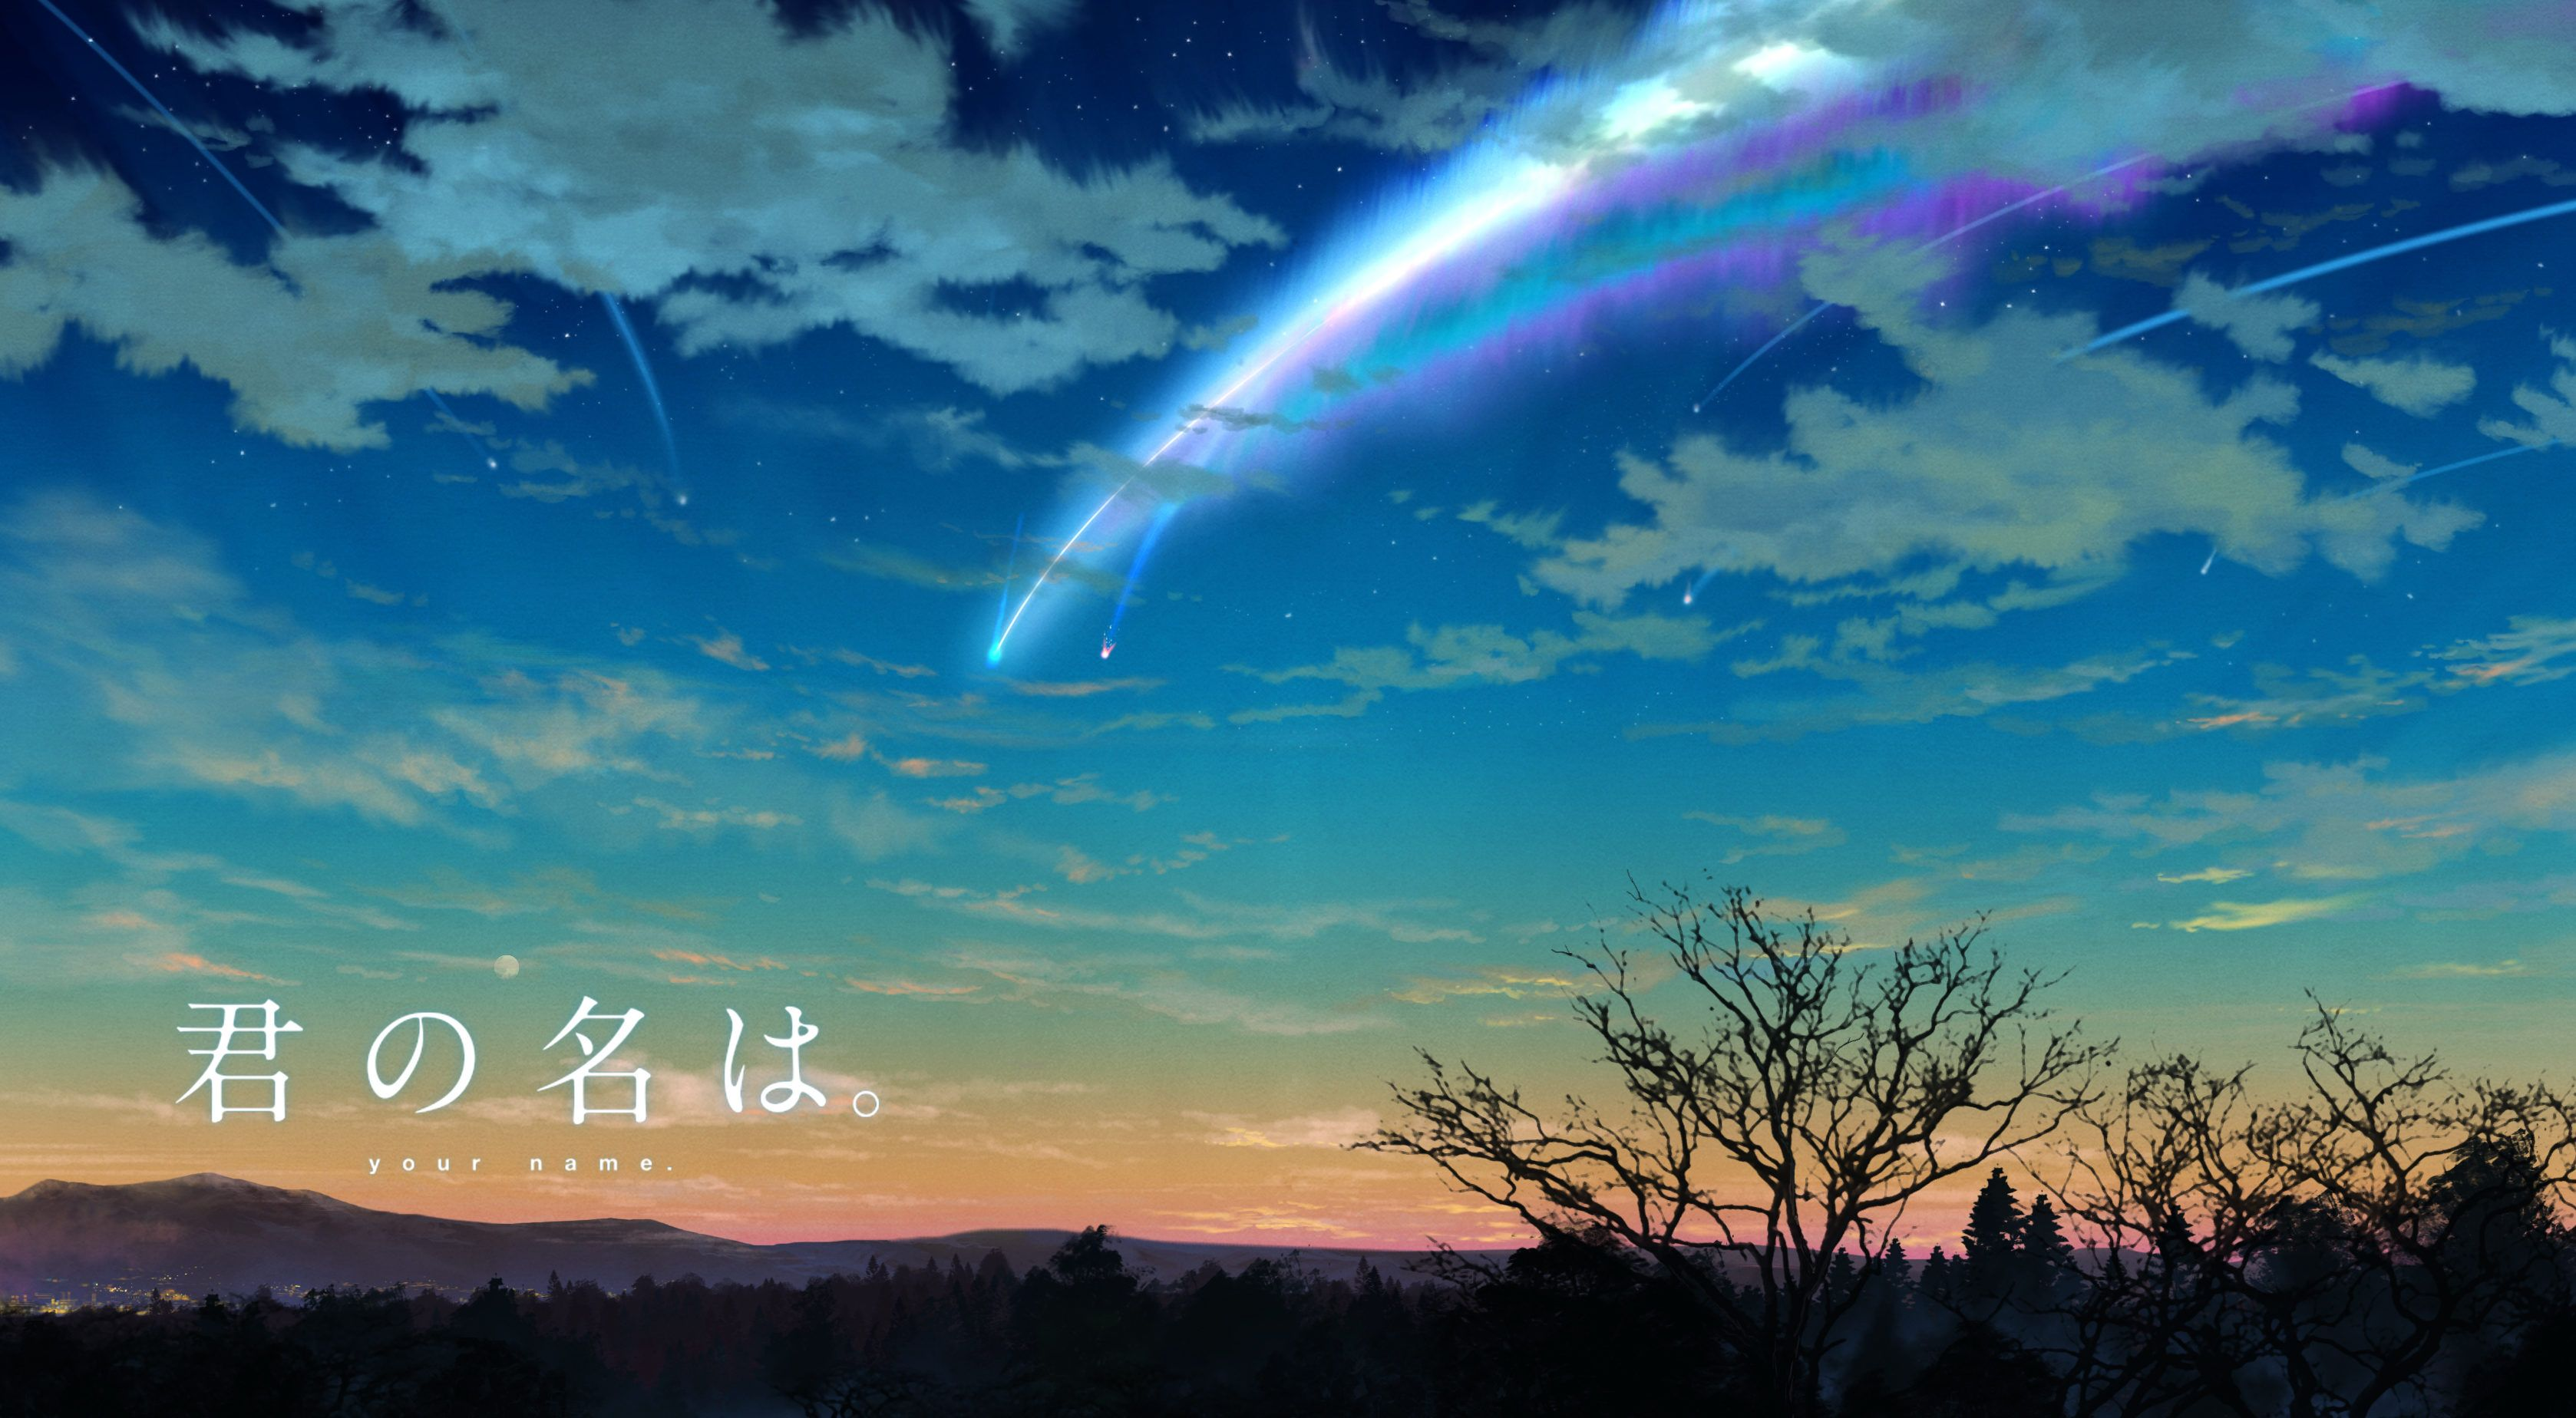 Kimi No Na Wa Wallpaper Uhd Wallpapers Kimi No Na Kimi No Na Wa